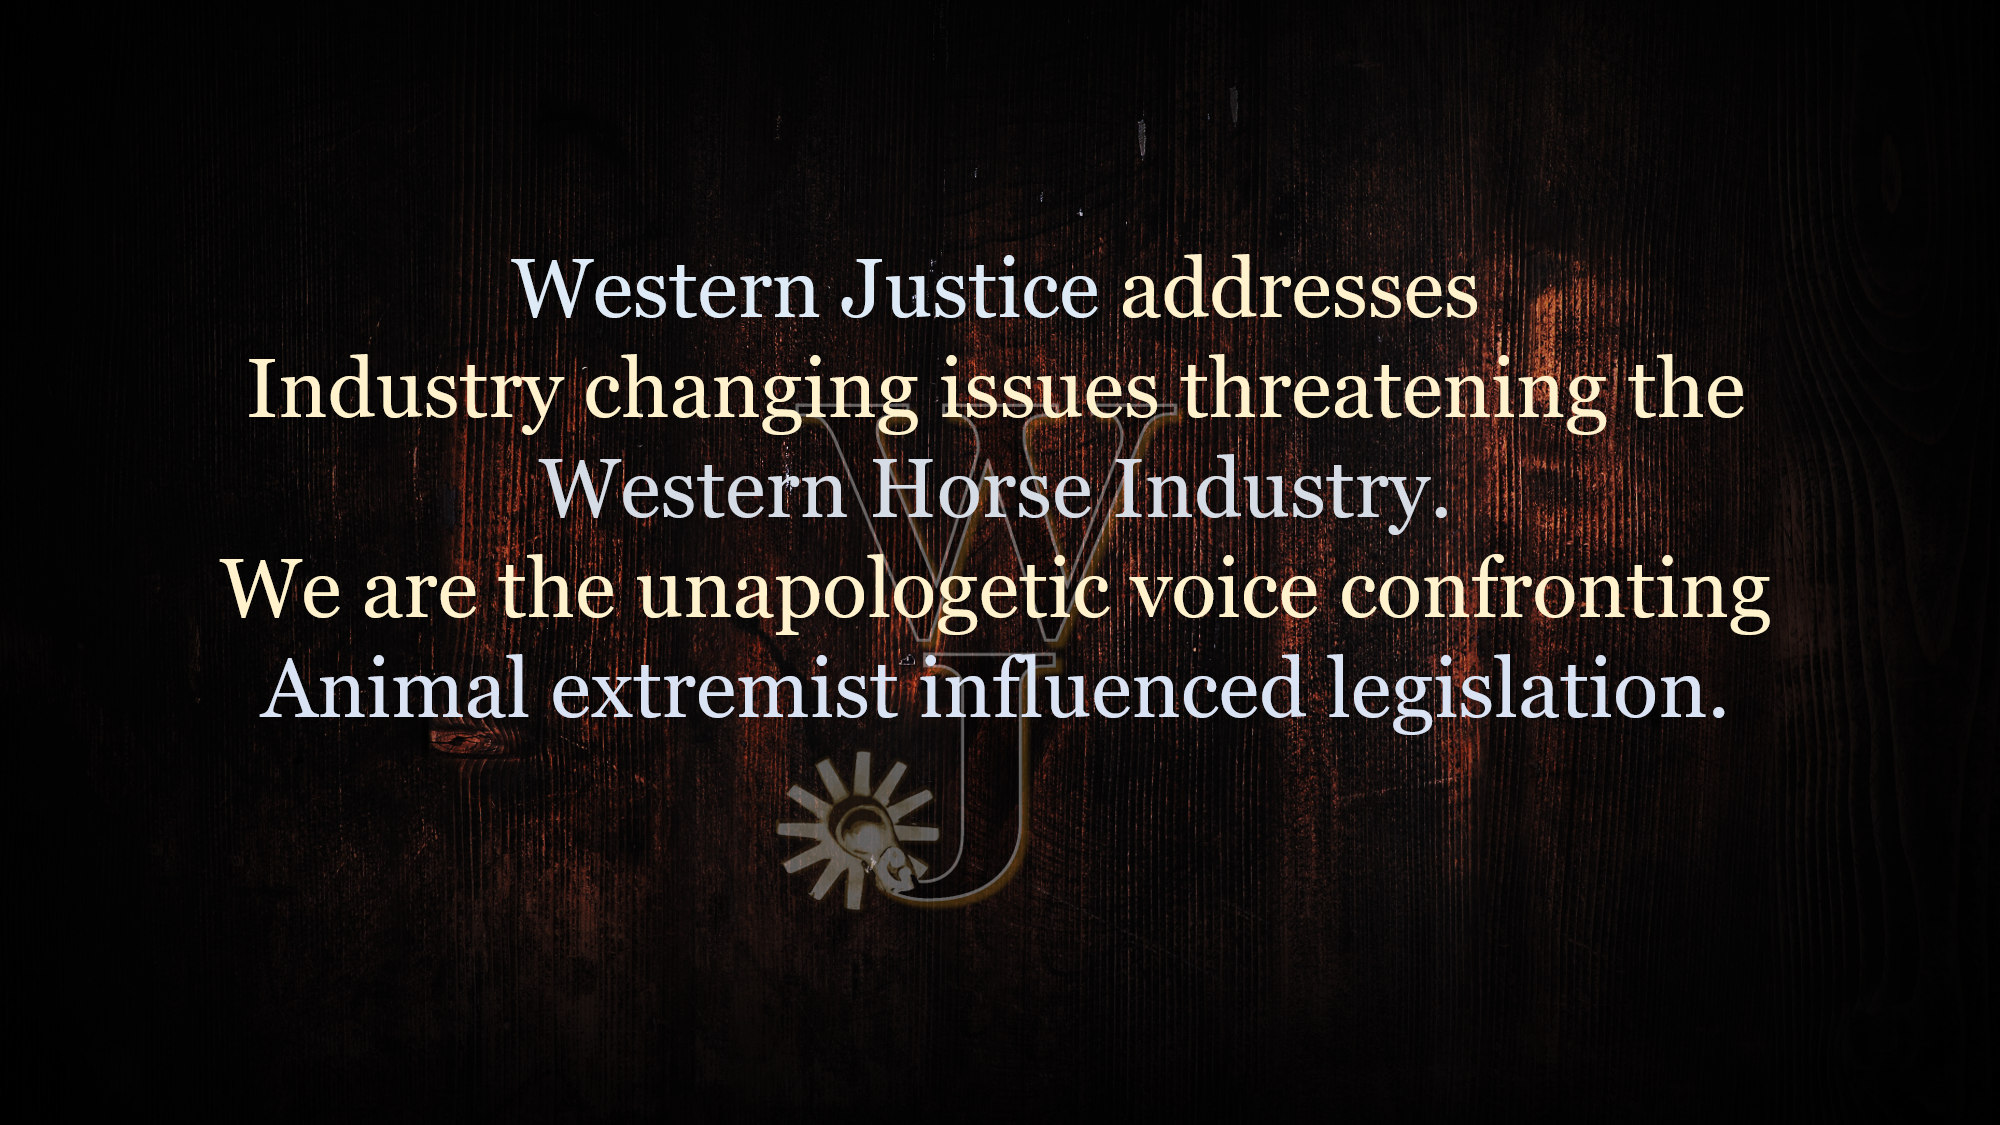 Western Justice Is The Unapologetic Voice For The Western Horse Industry.